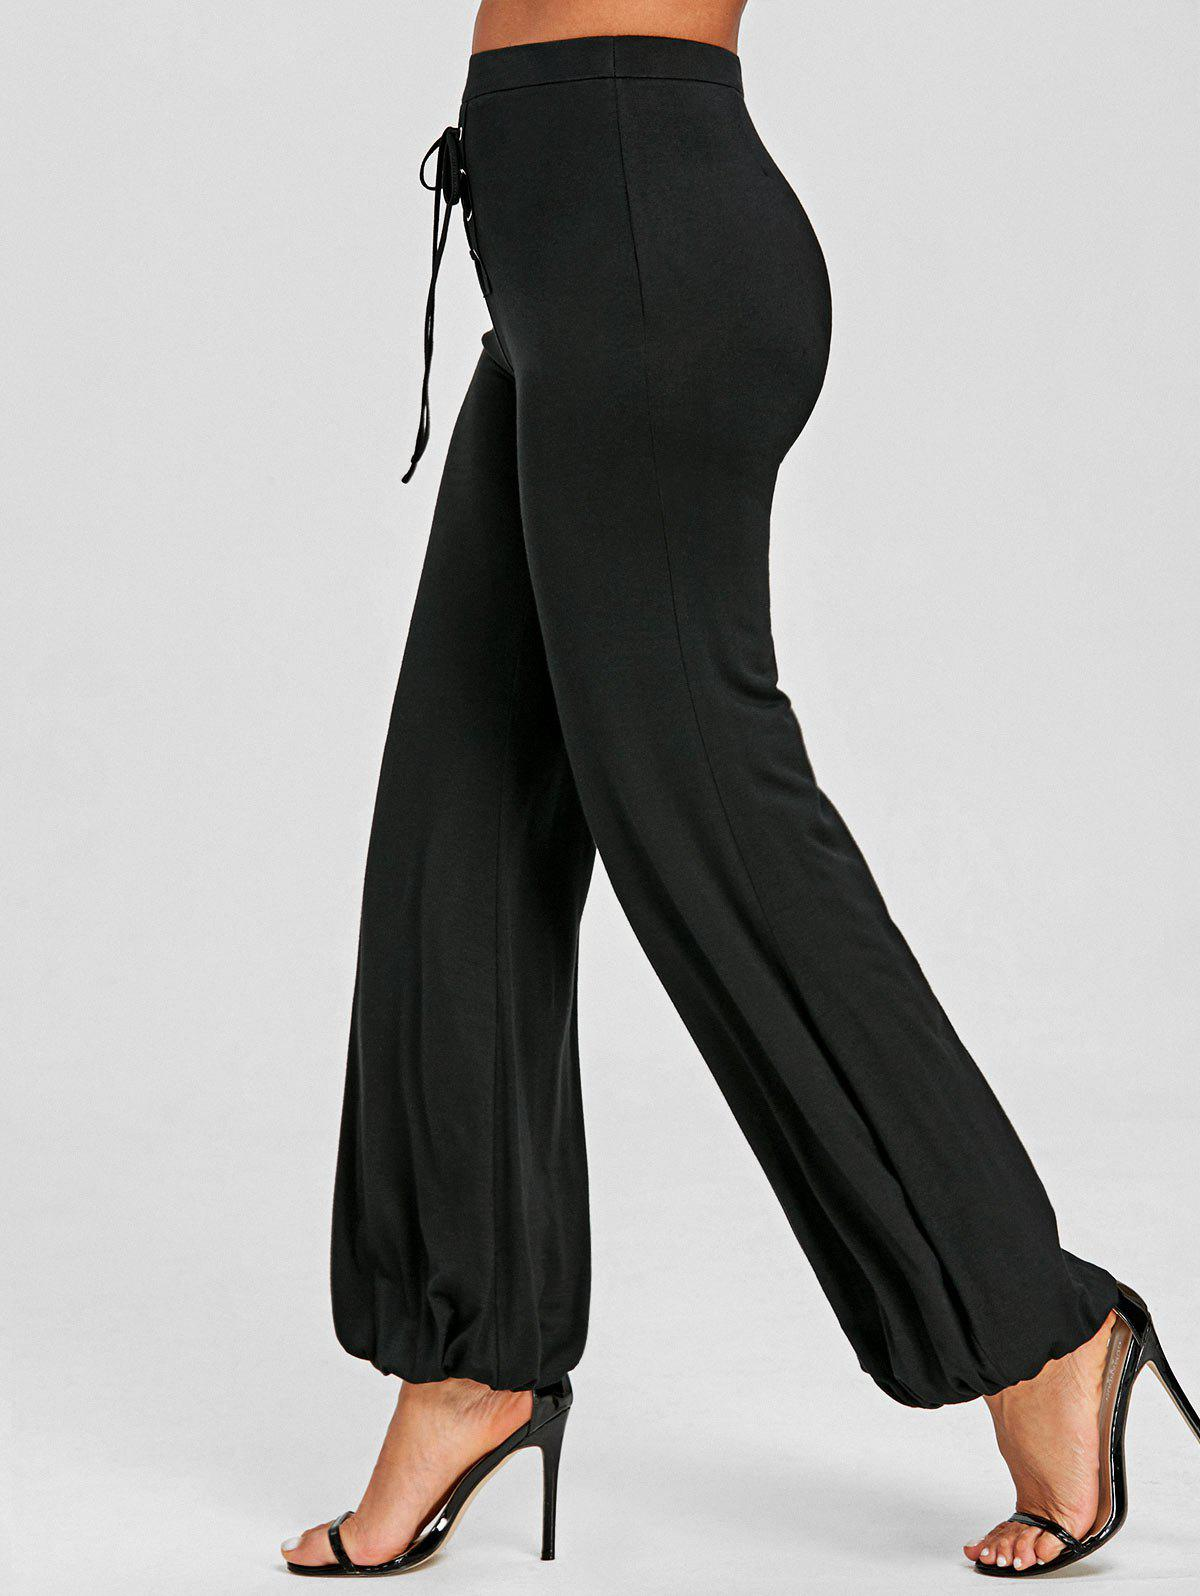 Fashion Lace Up High Rise Pants